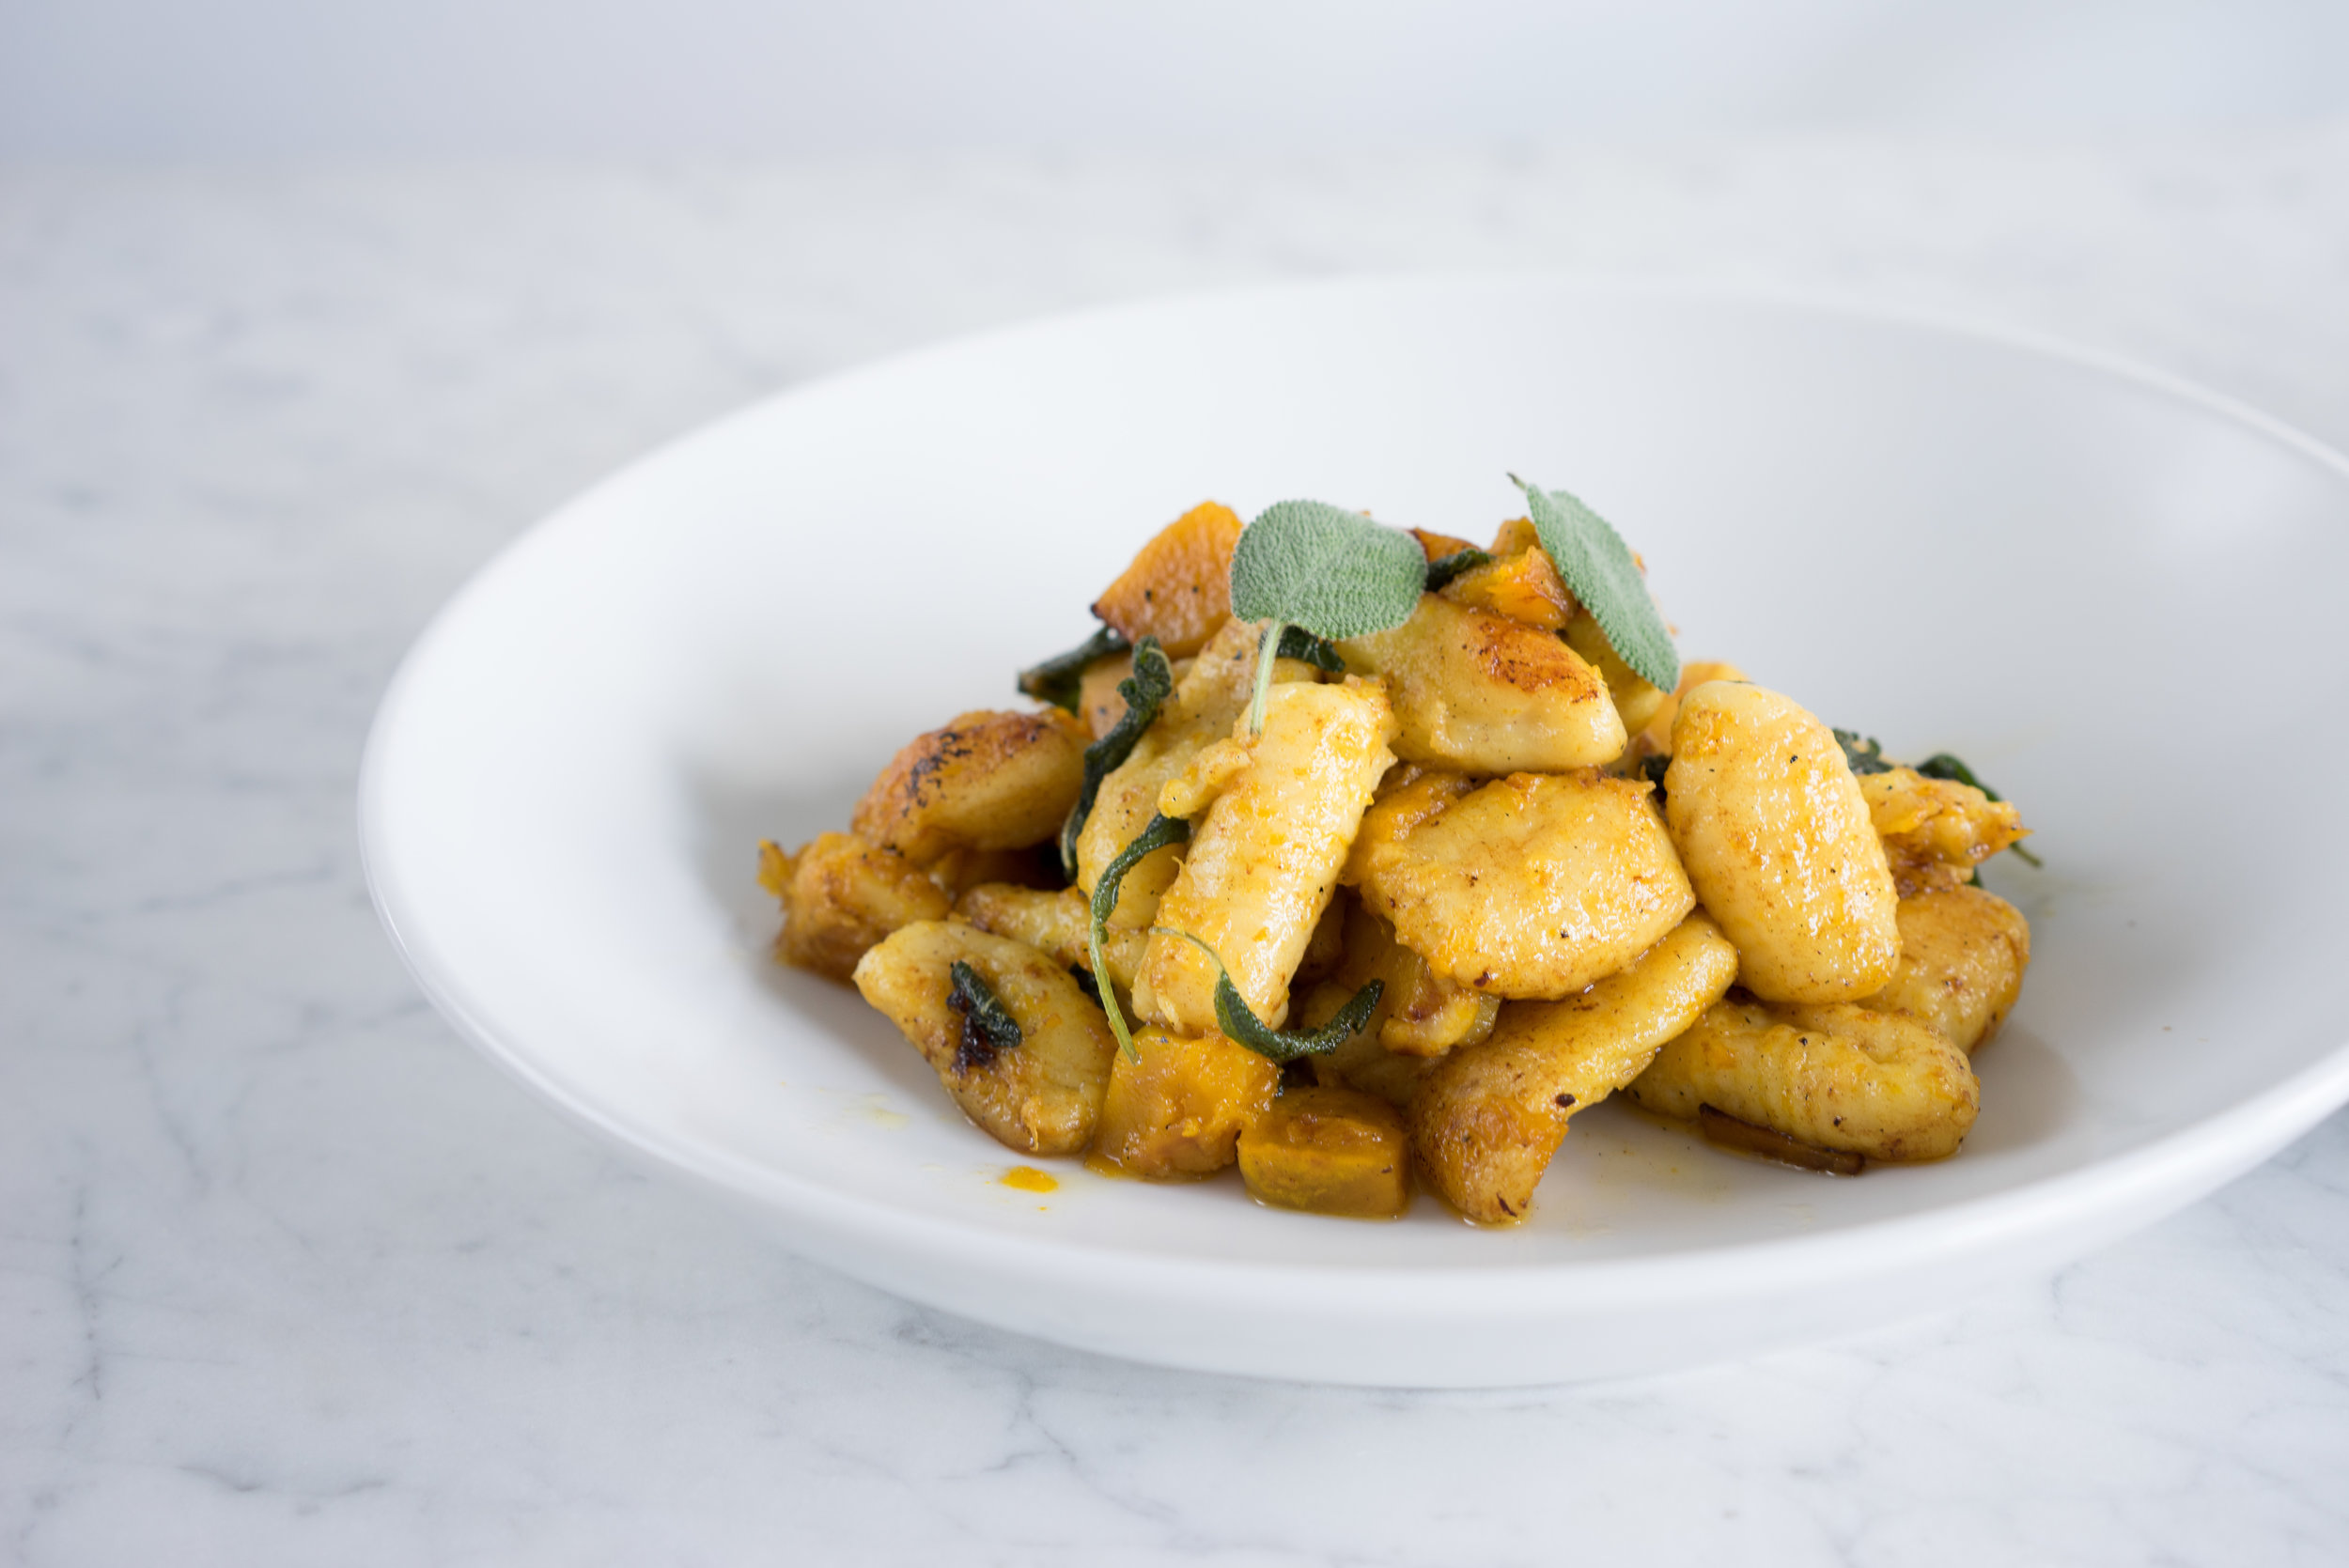 Gnocchi With Squash And Sage Brown Butter Cloudy Kitchen